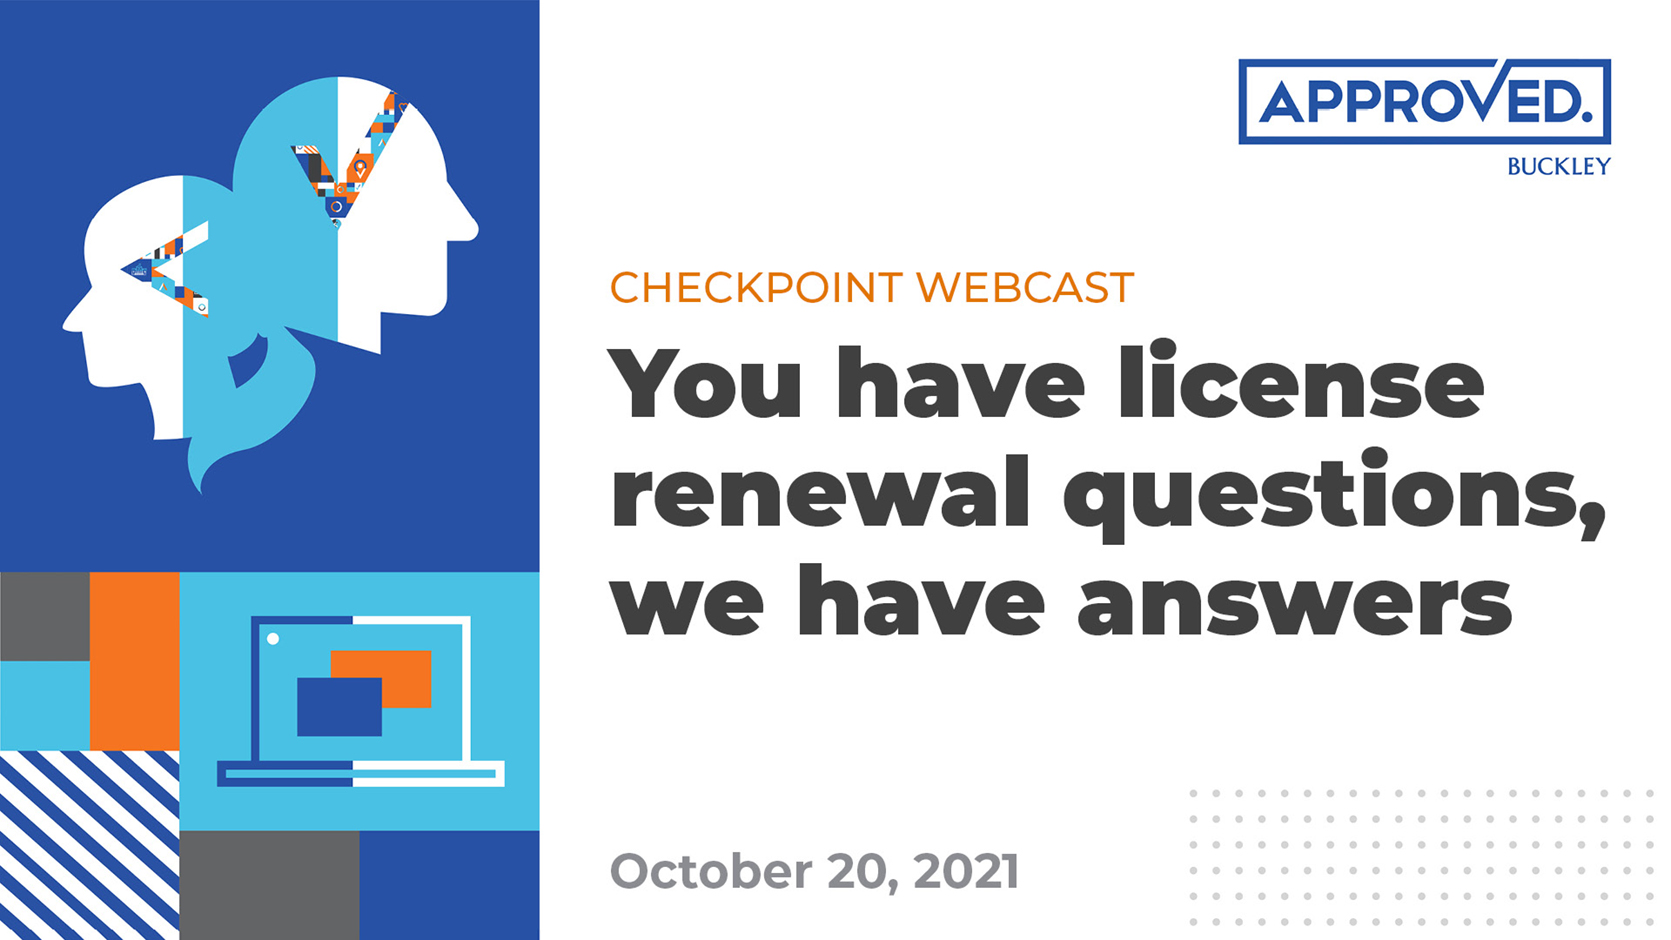 You have license renewal questions, we have answers | APPROVED Checkpoint Webcast